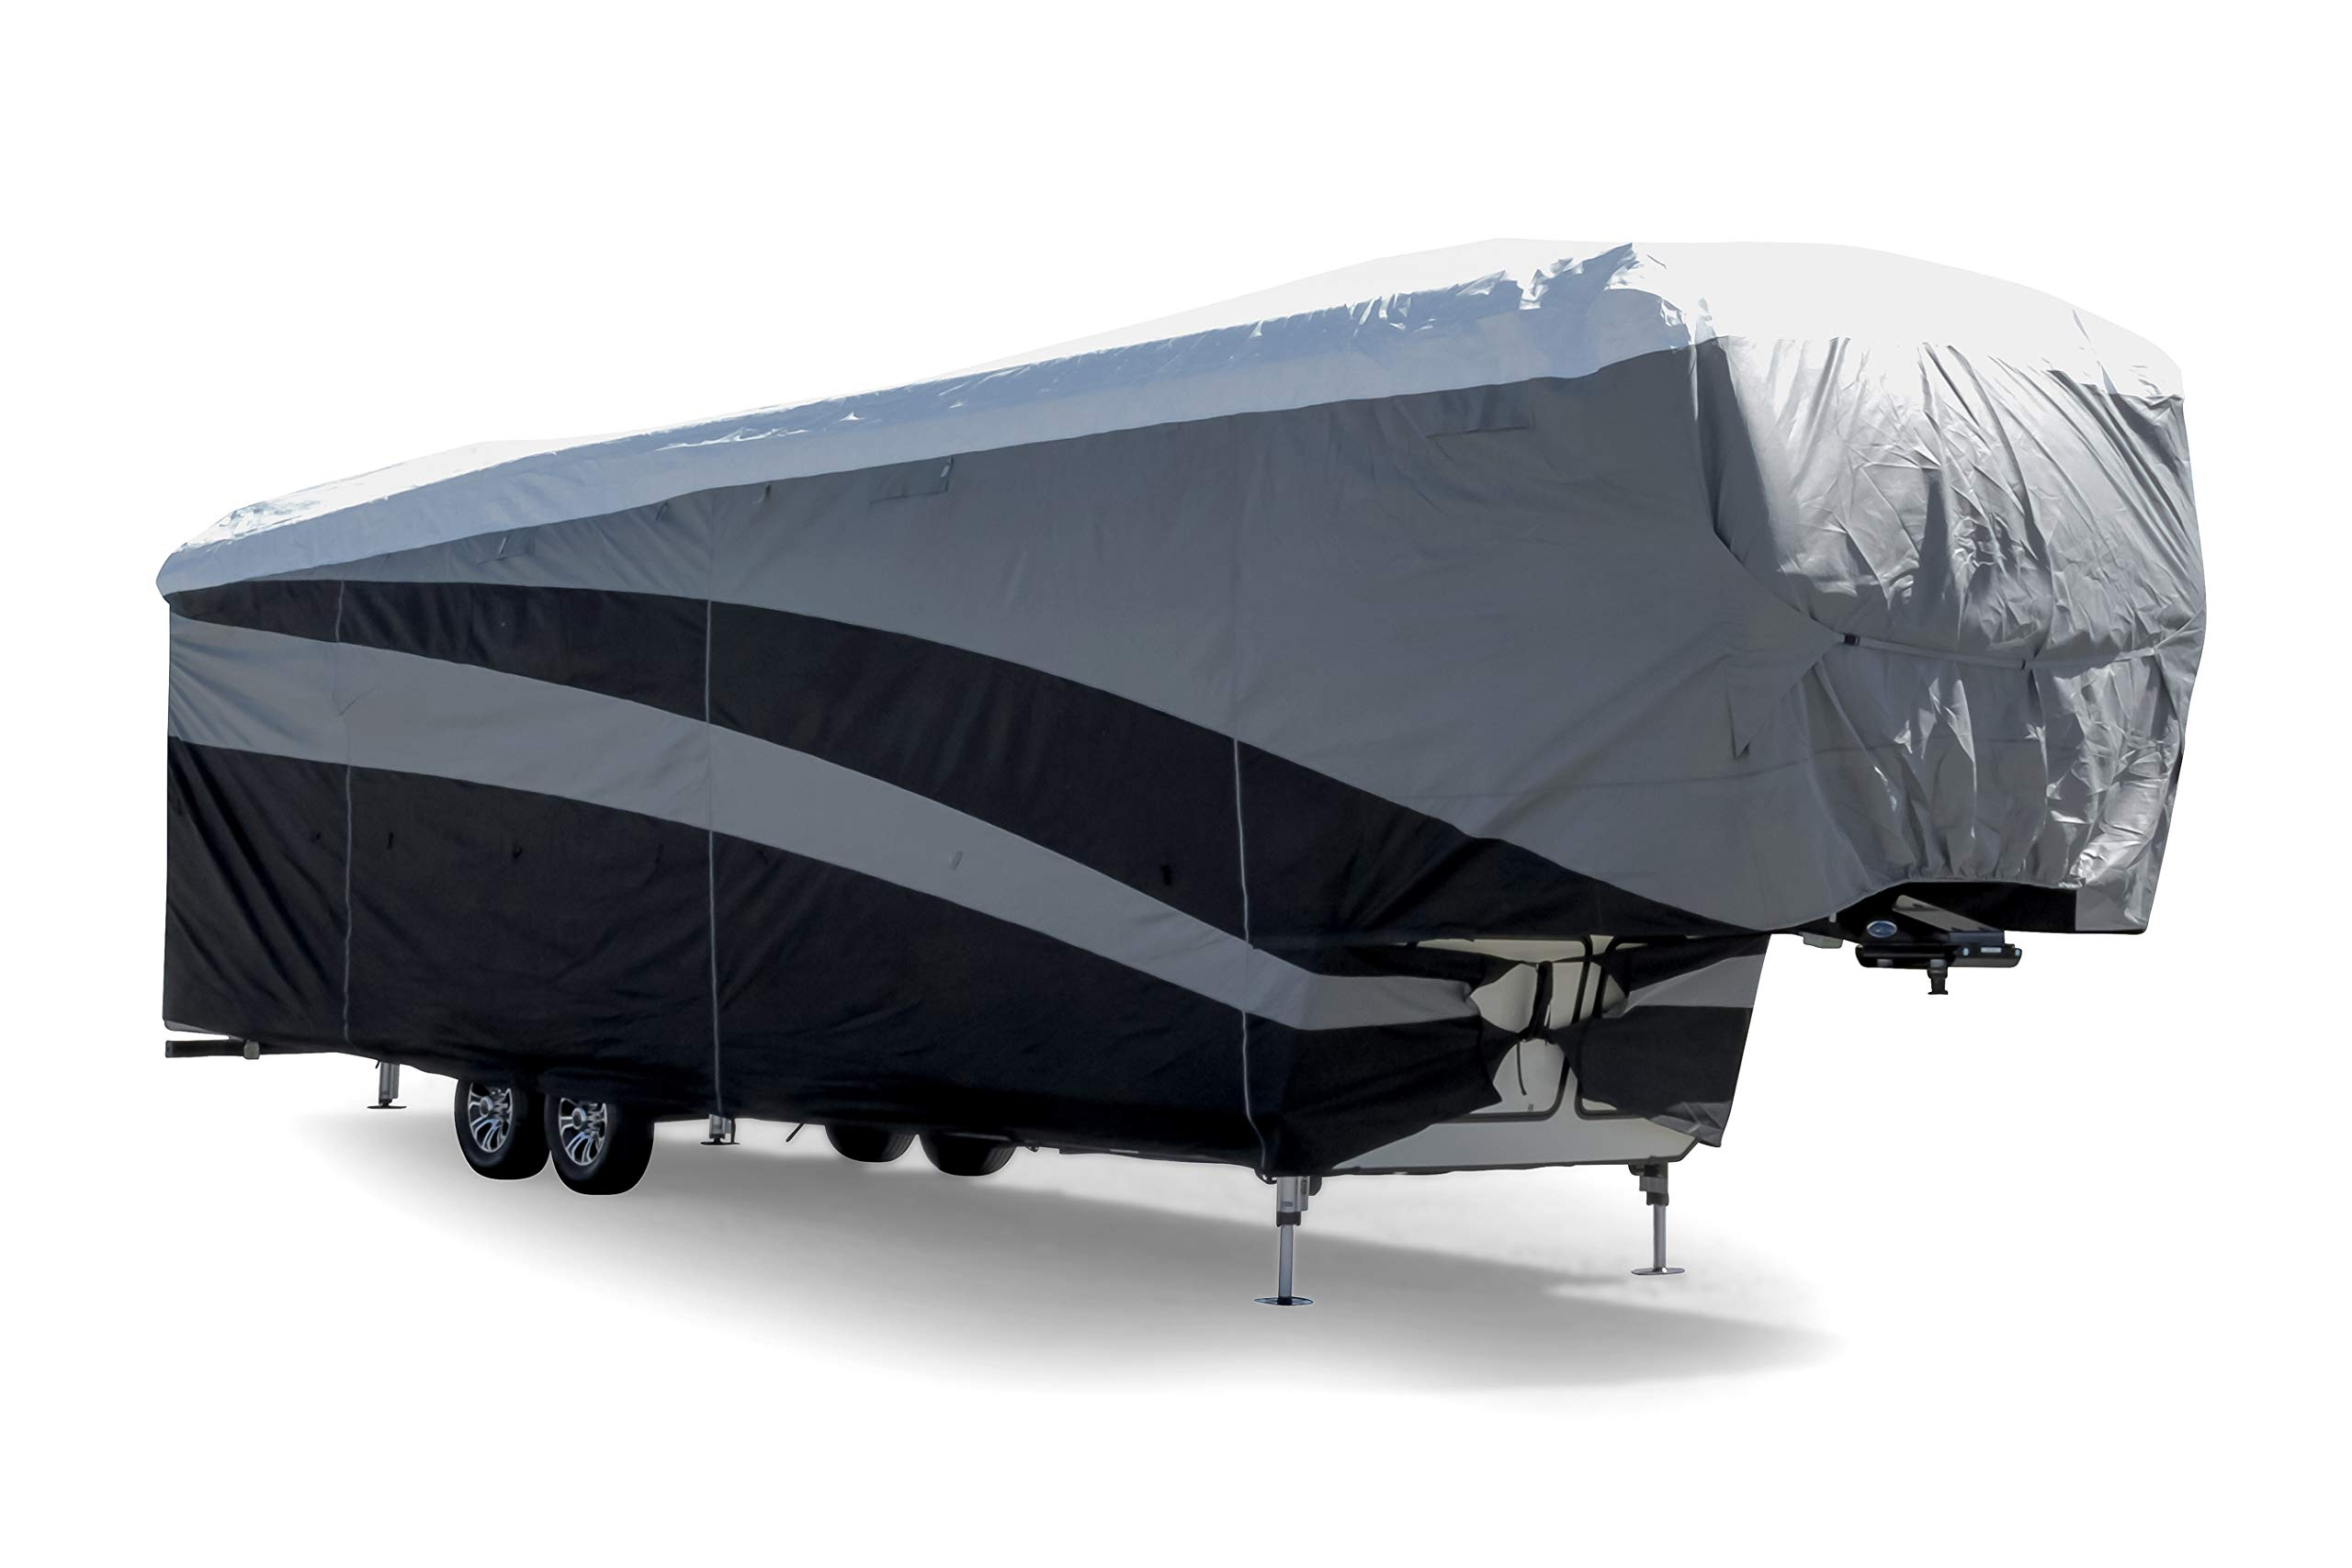 Camco ULTRAGuard Supreme RV Cover-Extremely Durable Design Fits Fifth Wheel Trailers 34' -37', Weatherproof with UV Protection and Dupont Tyvek Top (56150) by Camco (Image #5)